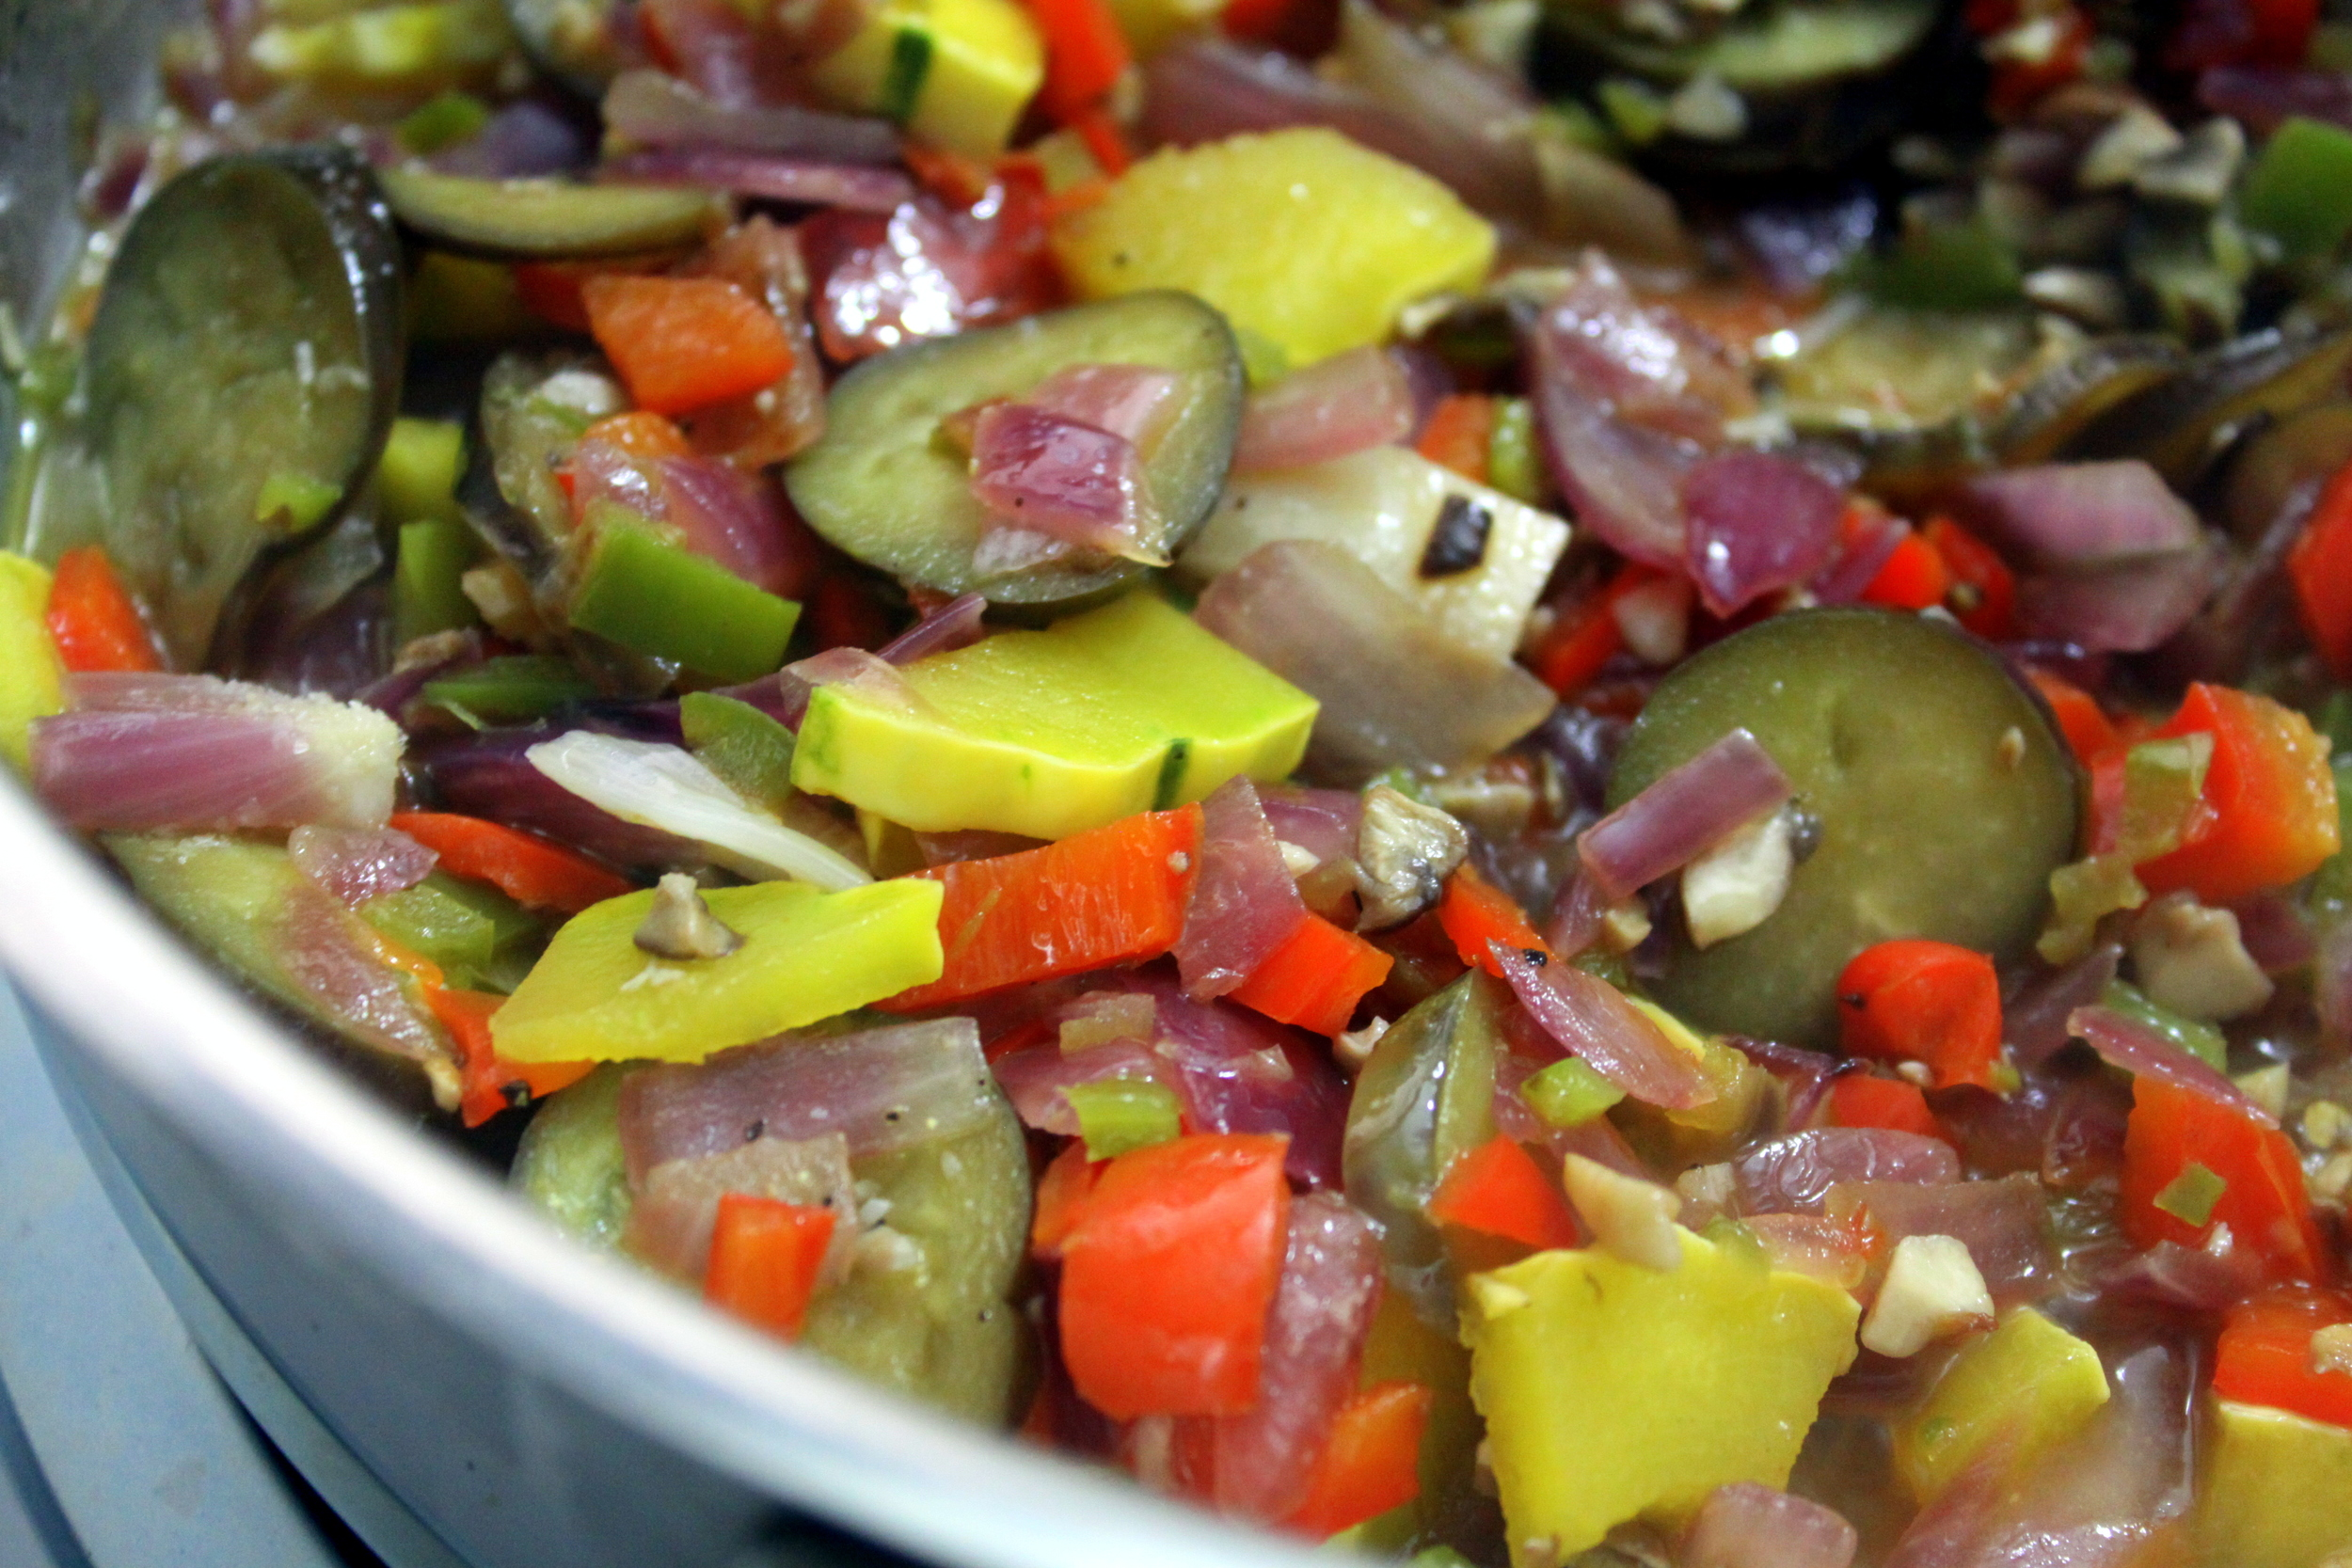 Summer may have passed but you can still enjoy a colorful vegetable sauce.